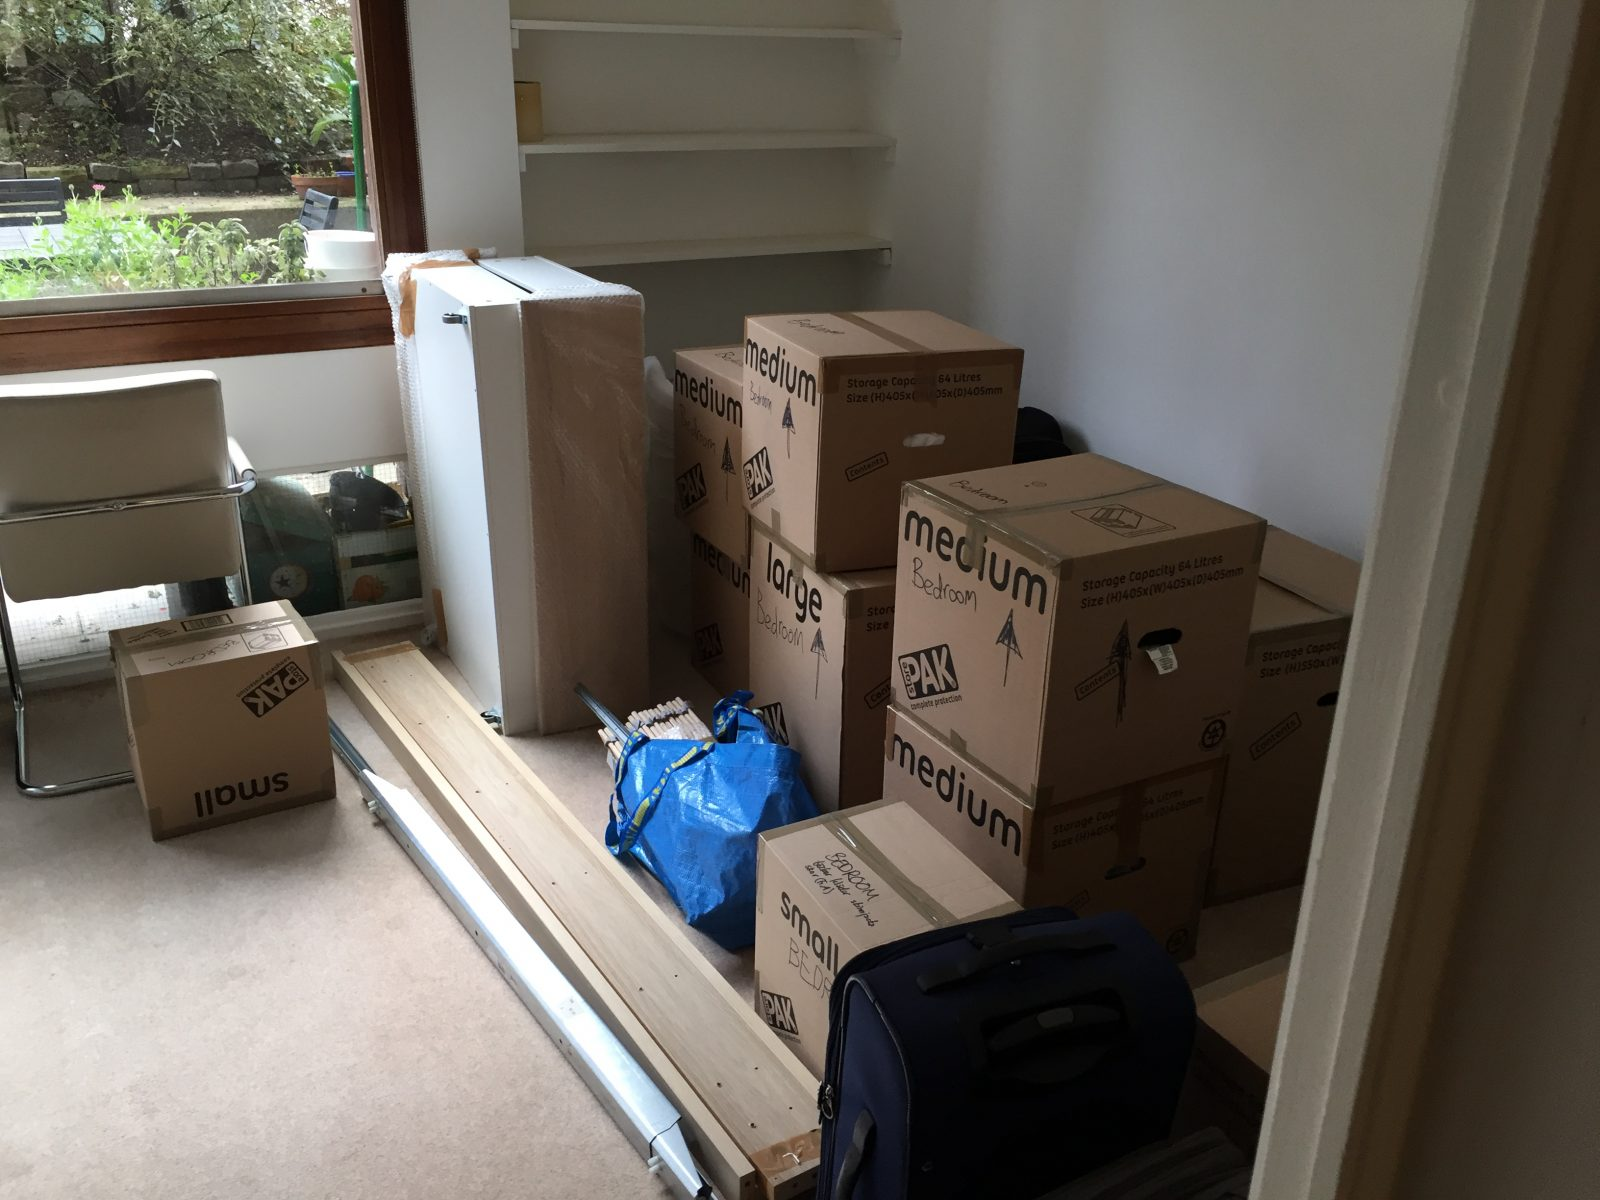 Unloading complete – now it's over to the clients!